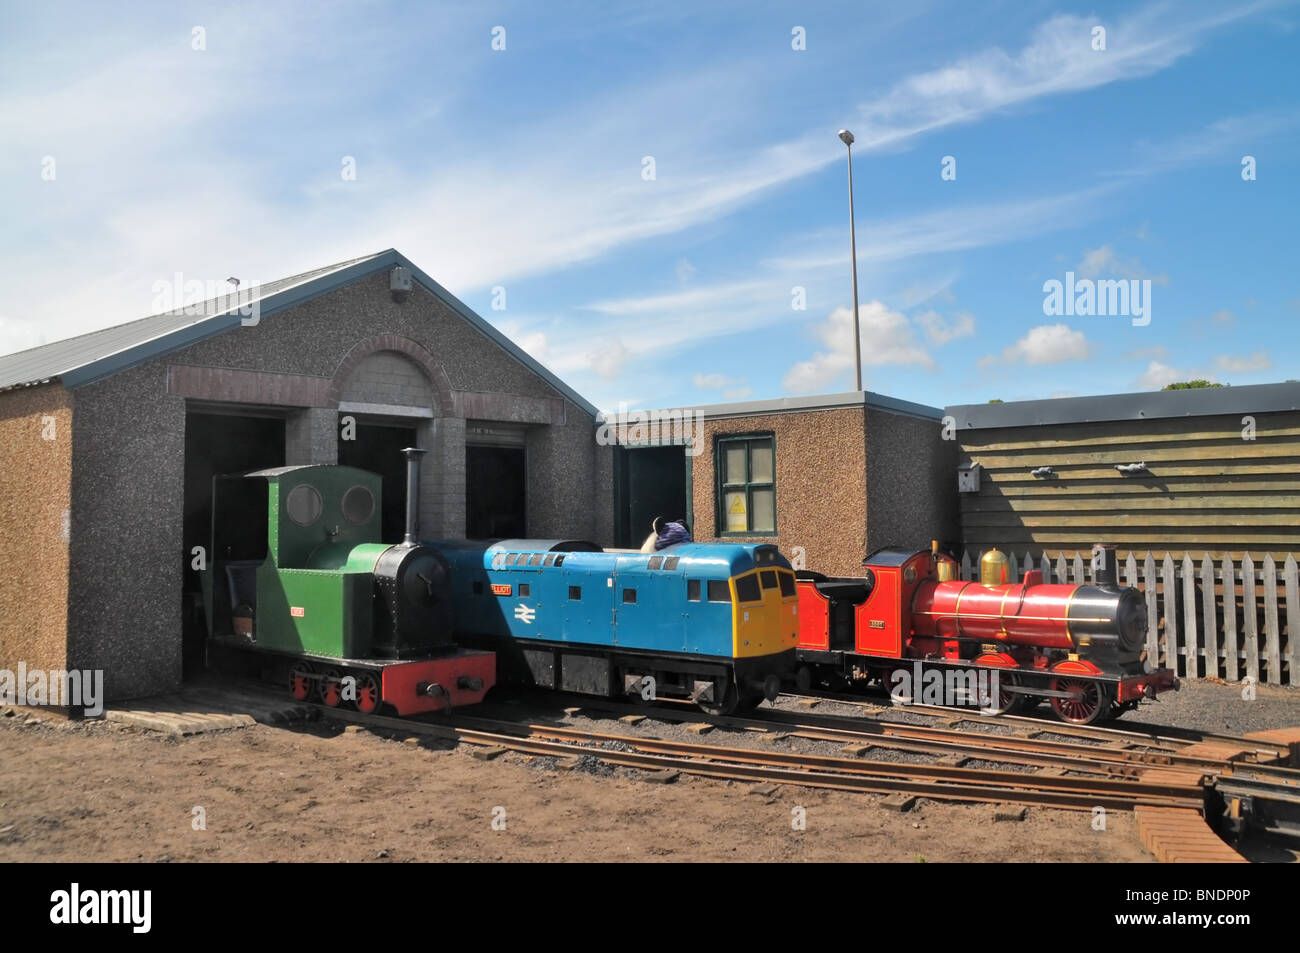 old types of train engines stationed at the sidings of a miniature but operational railway. - Stock Image